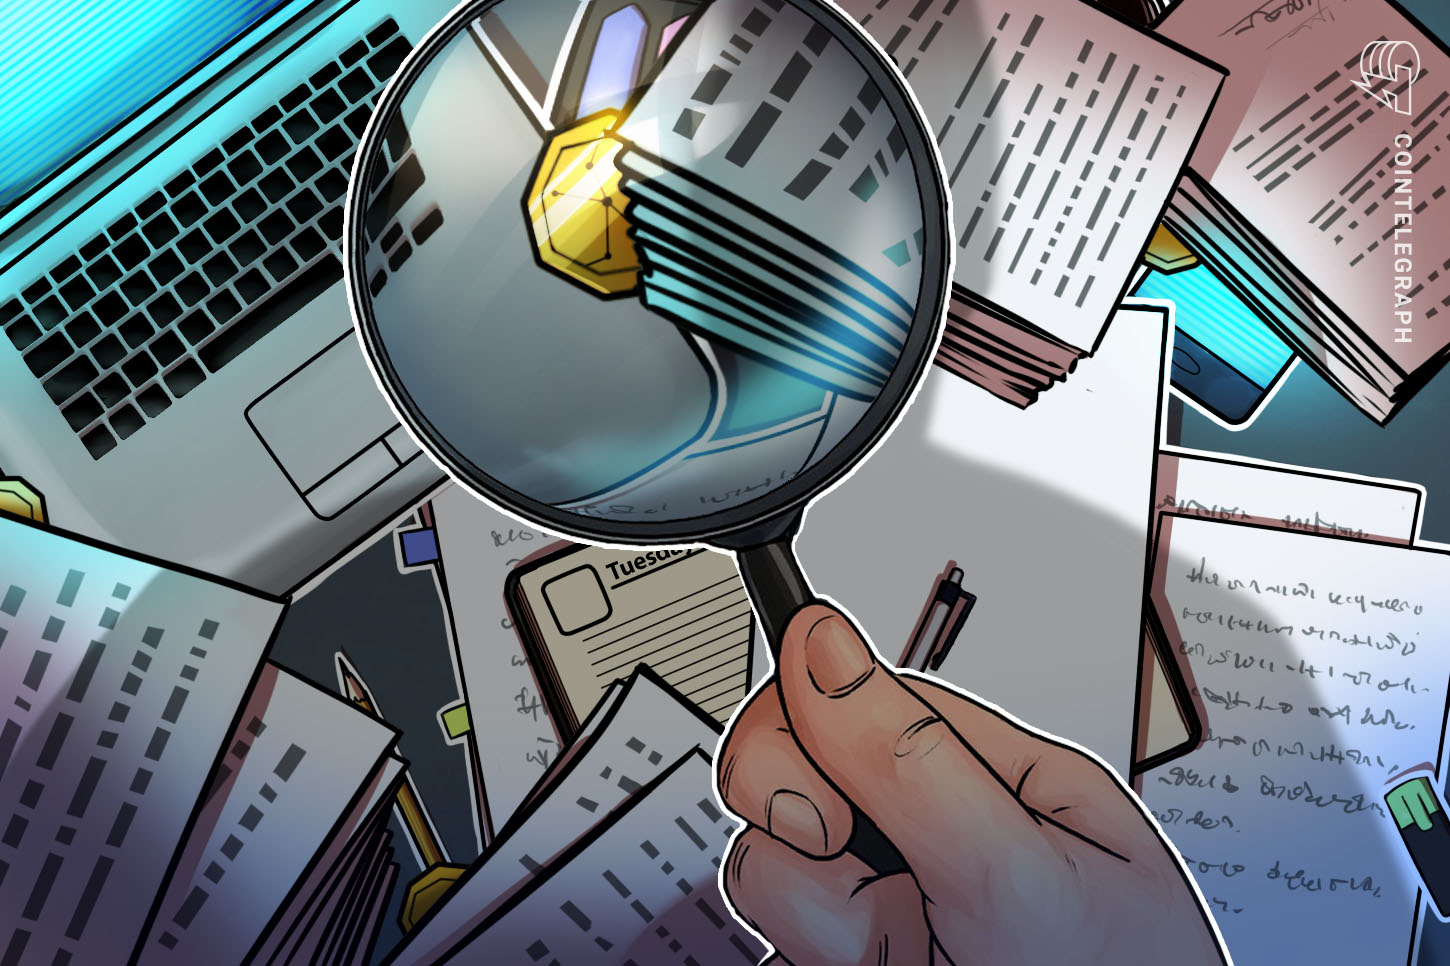 A report released by crypto exchange Binance illustrates how scams targeting cryptocurrency investors attempt to gain credibility.